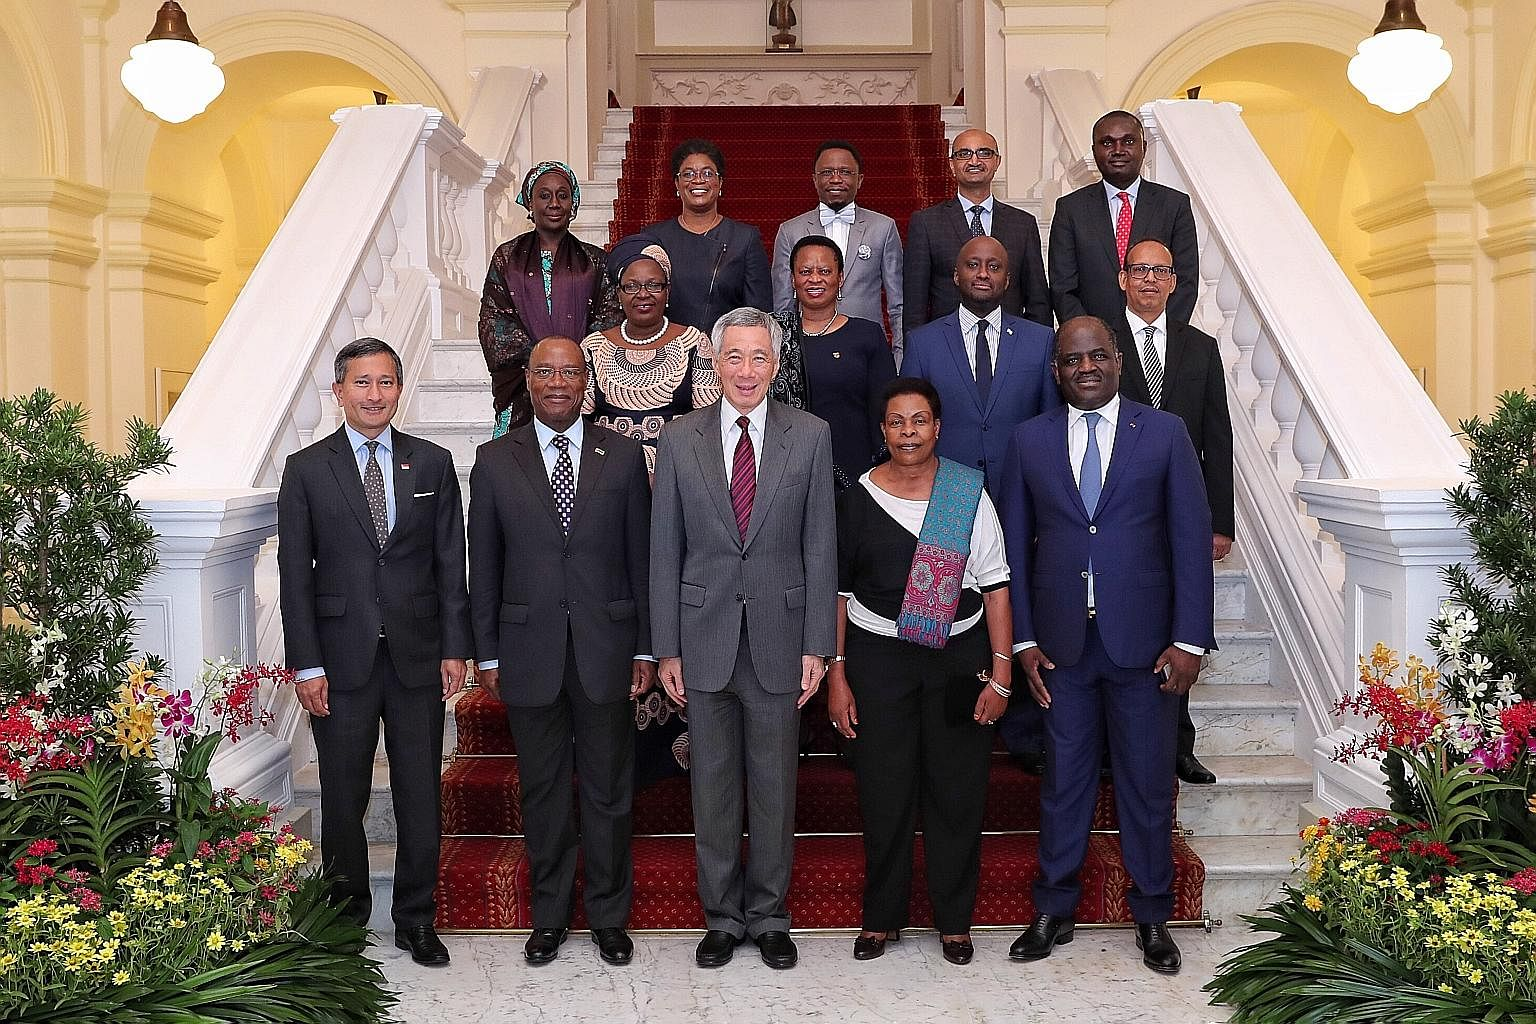 Twelve ministers from African countries with Prime Minister Lee Hsien Loong and Foreign Minister Vivian Balakrishnan at the Istana as part of a two-day visit that began on Monday. Mr Lee and the ministers representing Djibouti, Ethiopia, Gabon, Ghana